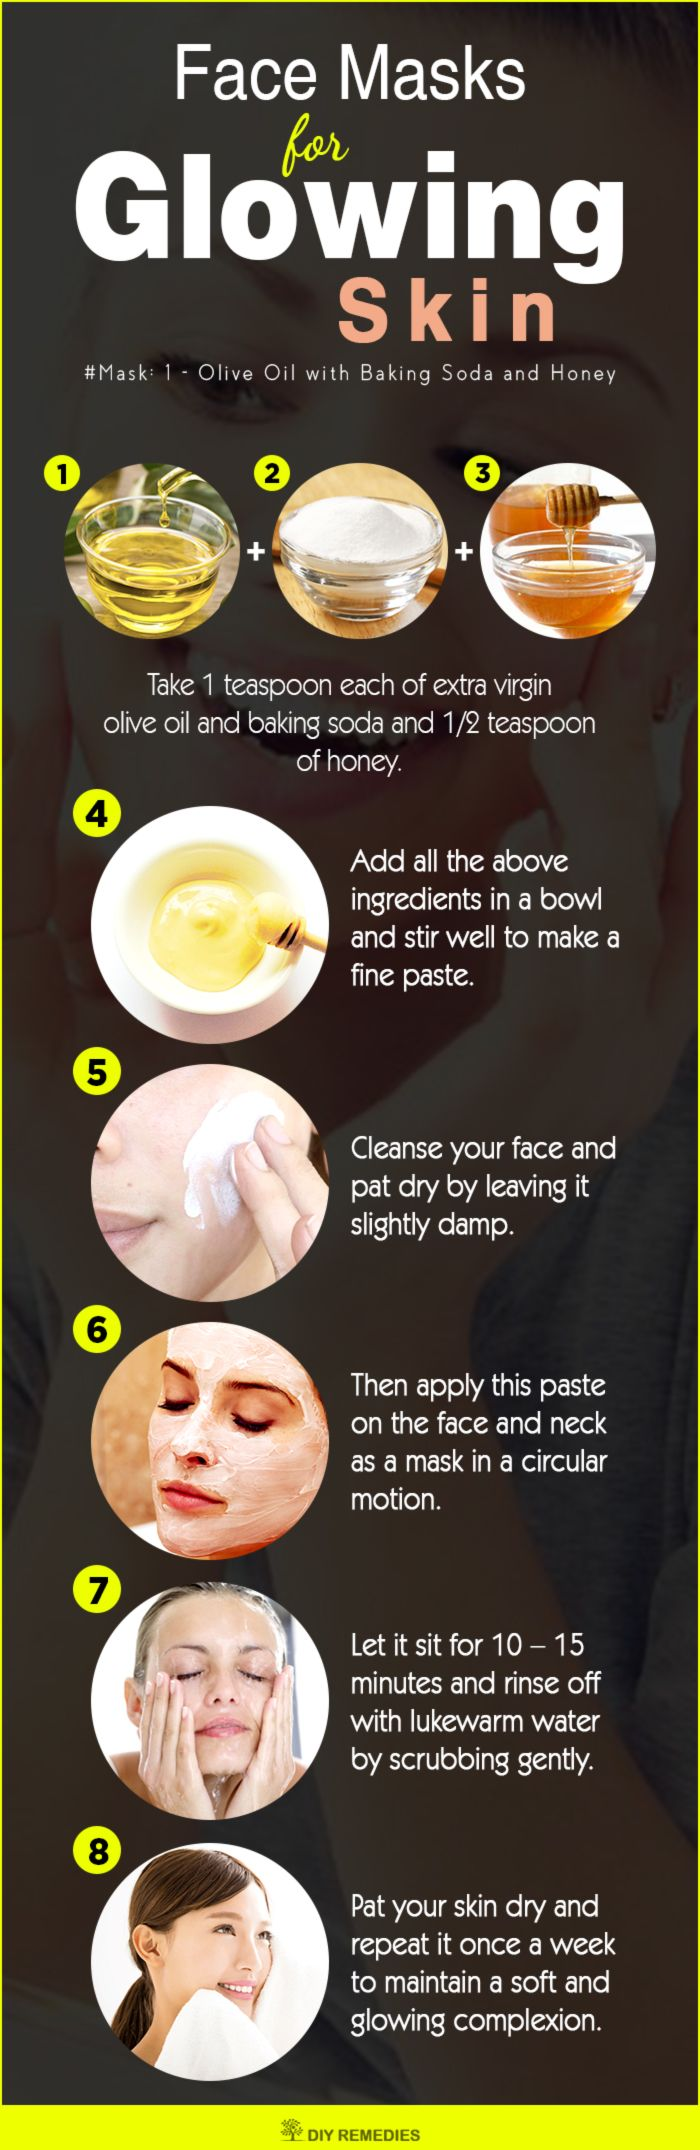 10 Best Face Masks for Glowing Skin | Homemade skin care